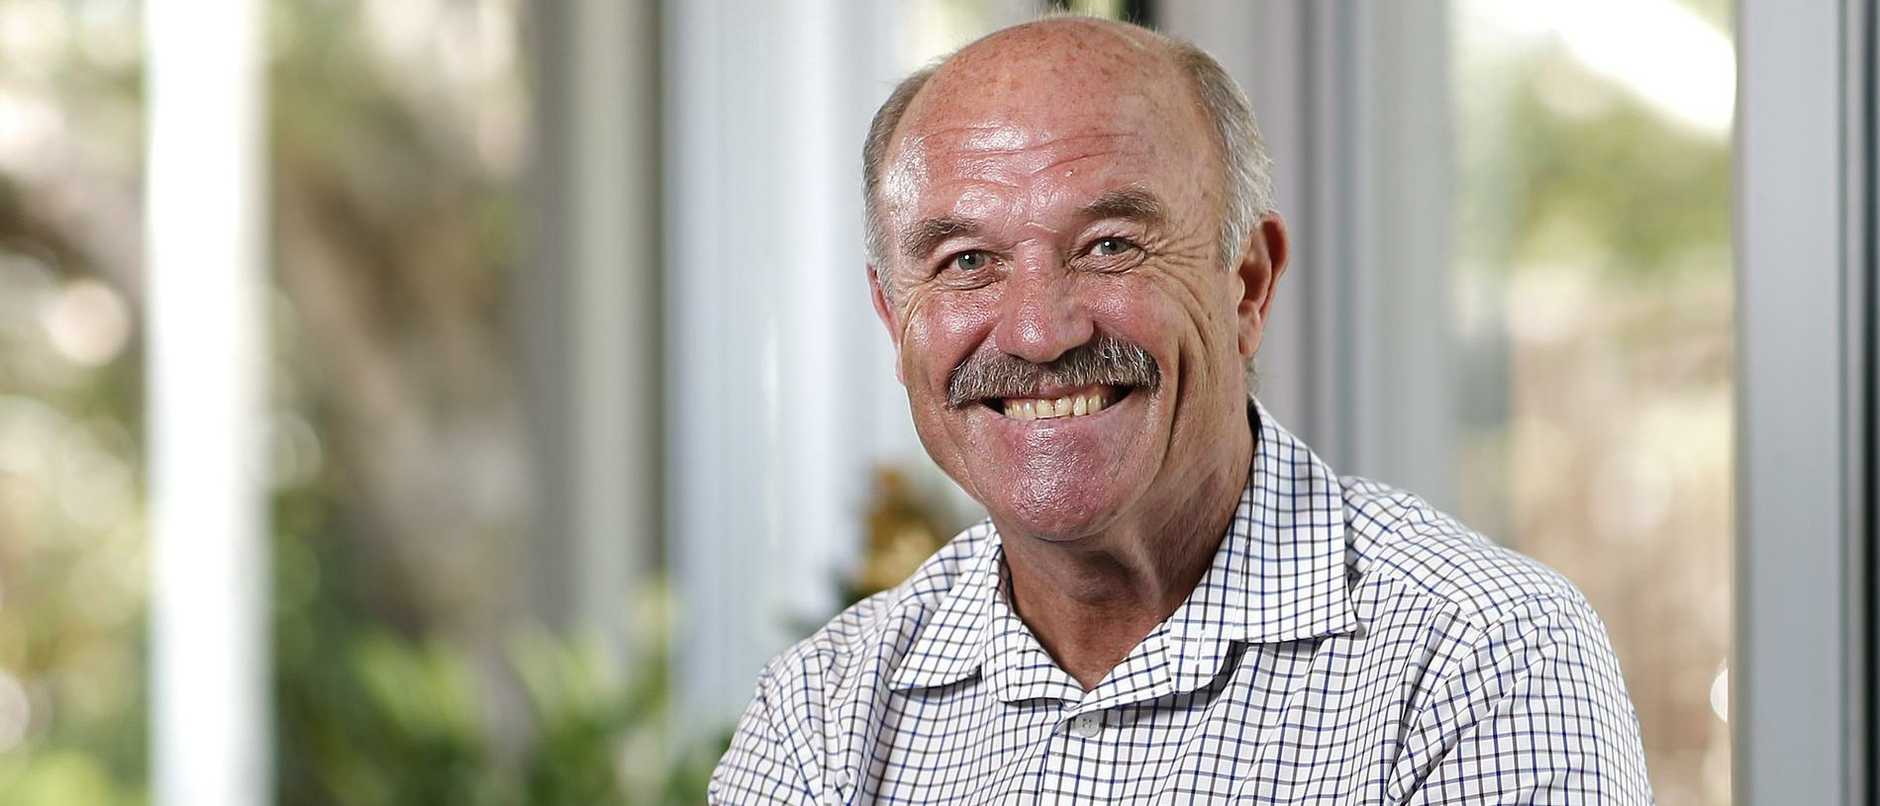 Wally Lewis has revealed just how close he came to committing suicide after his brain operation caused crippling depression.